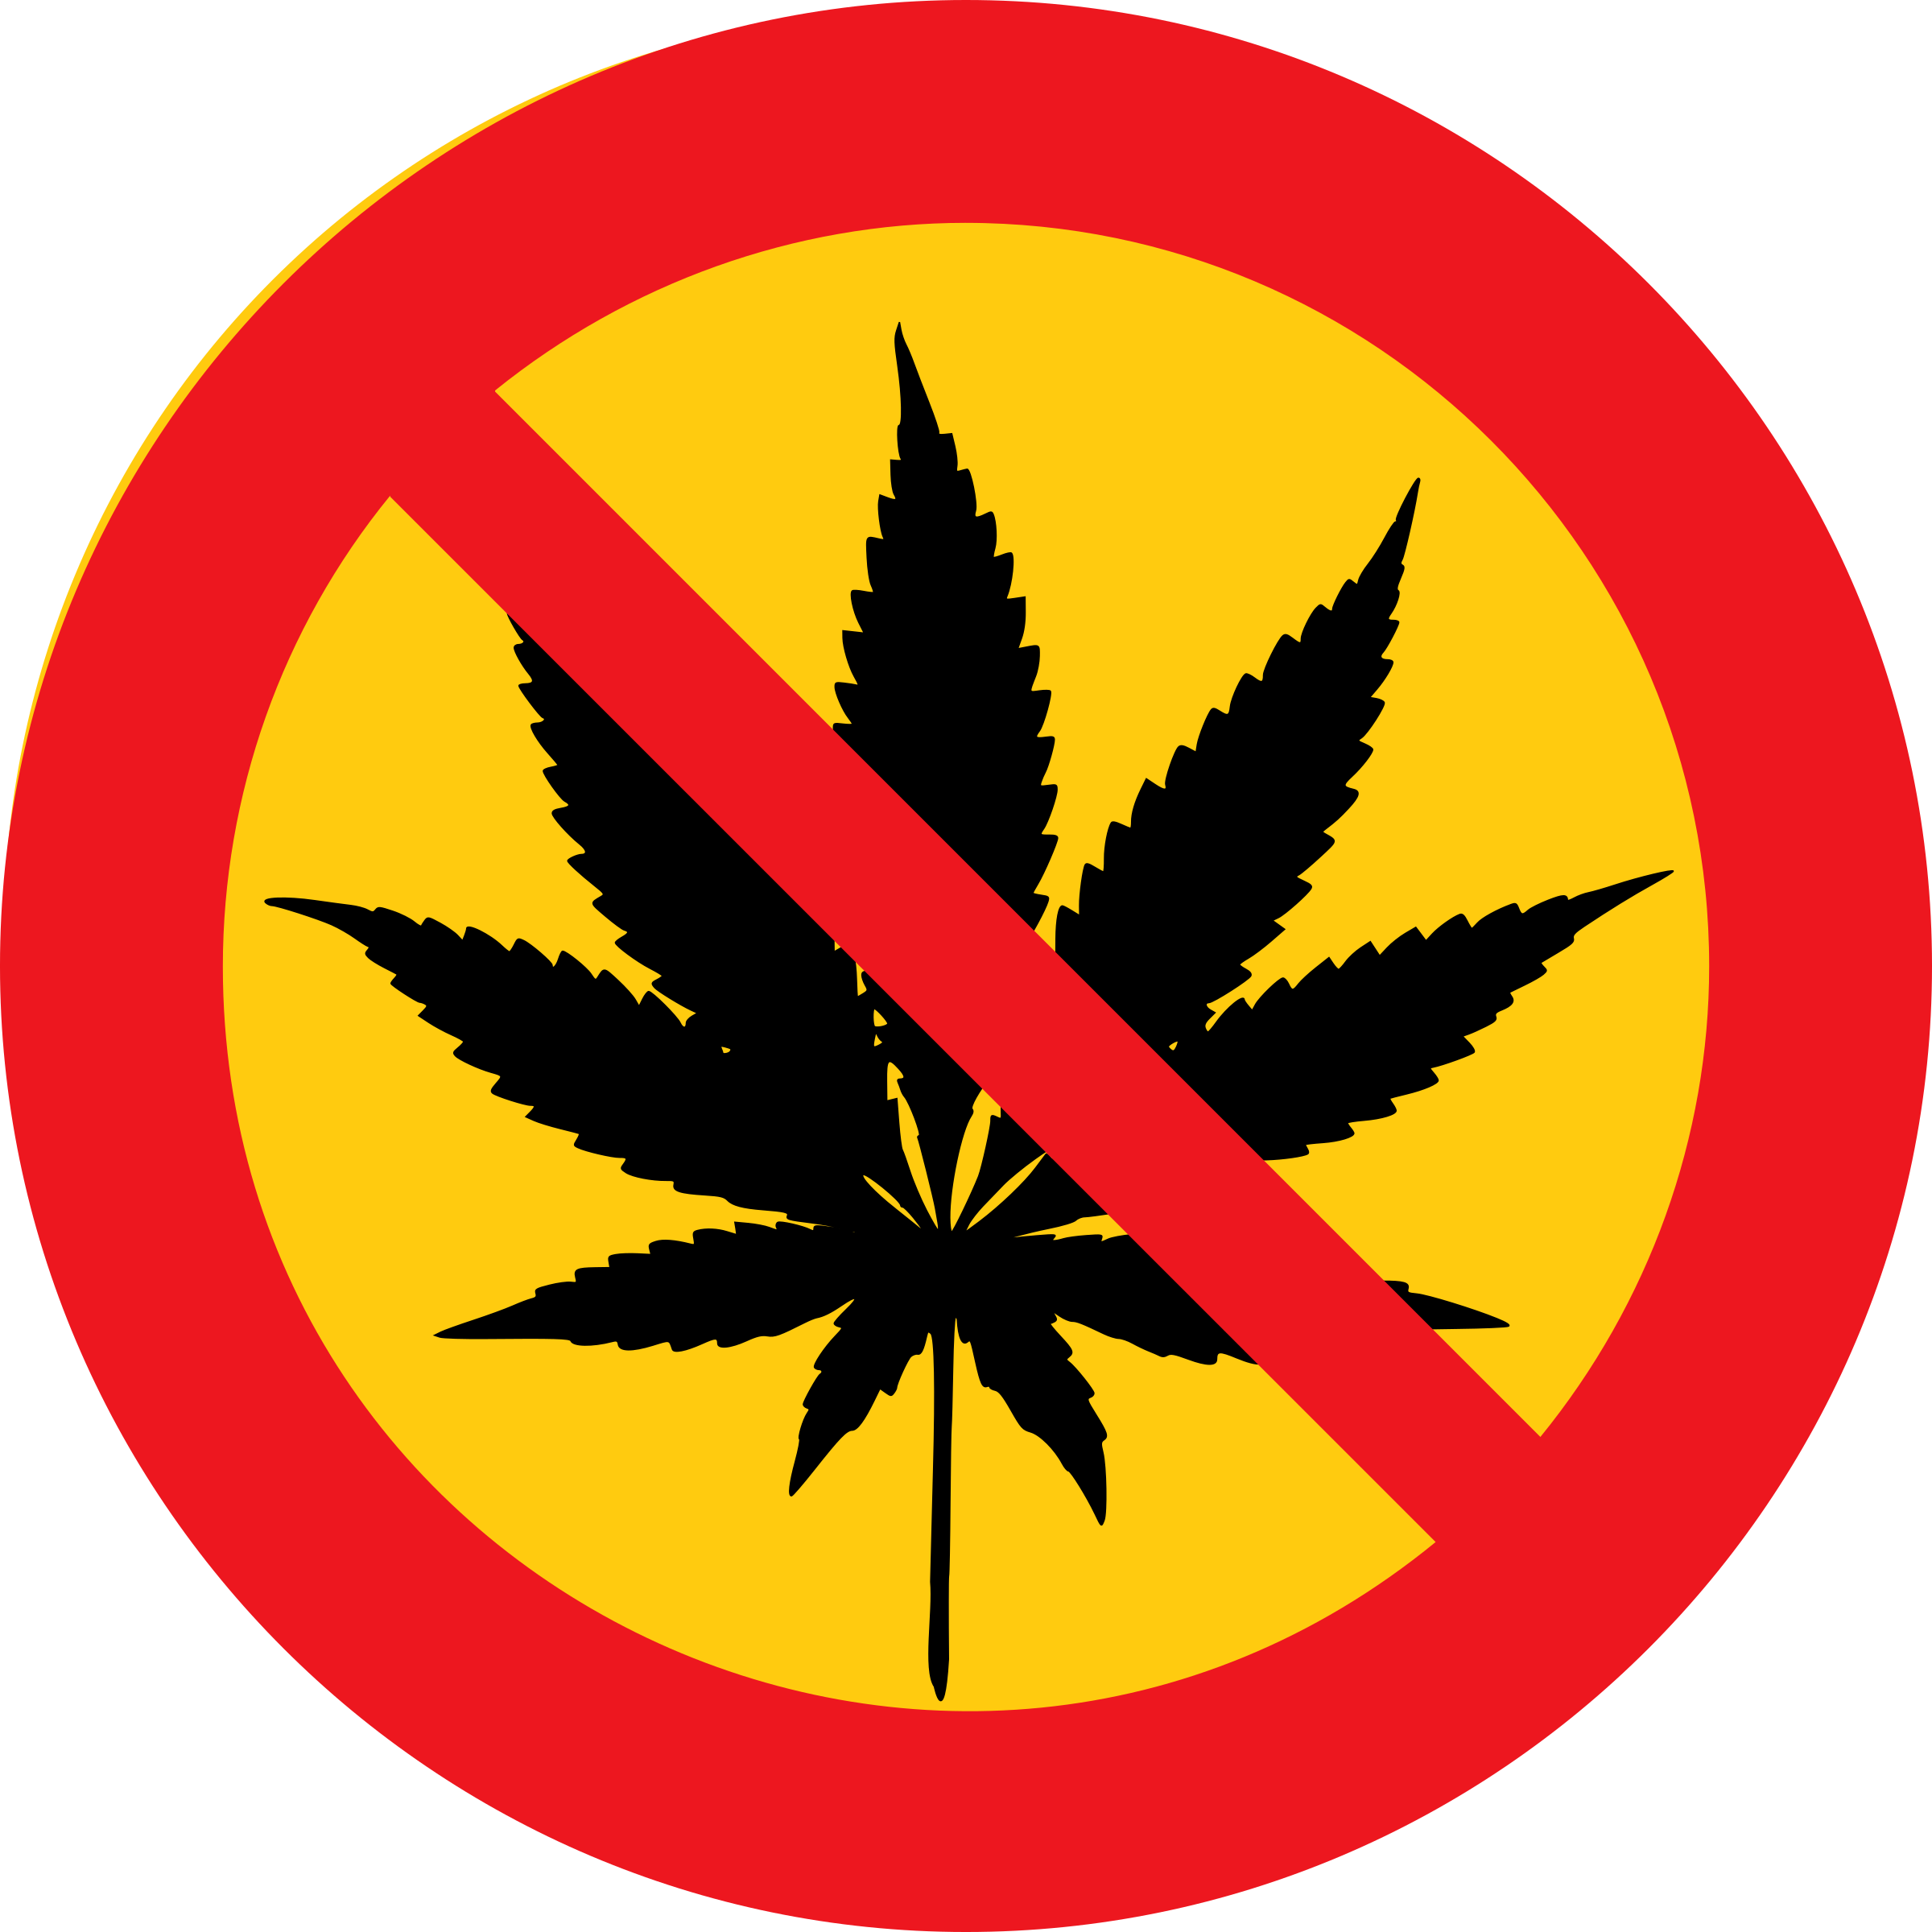 No cannabis by dominiquechappard